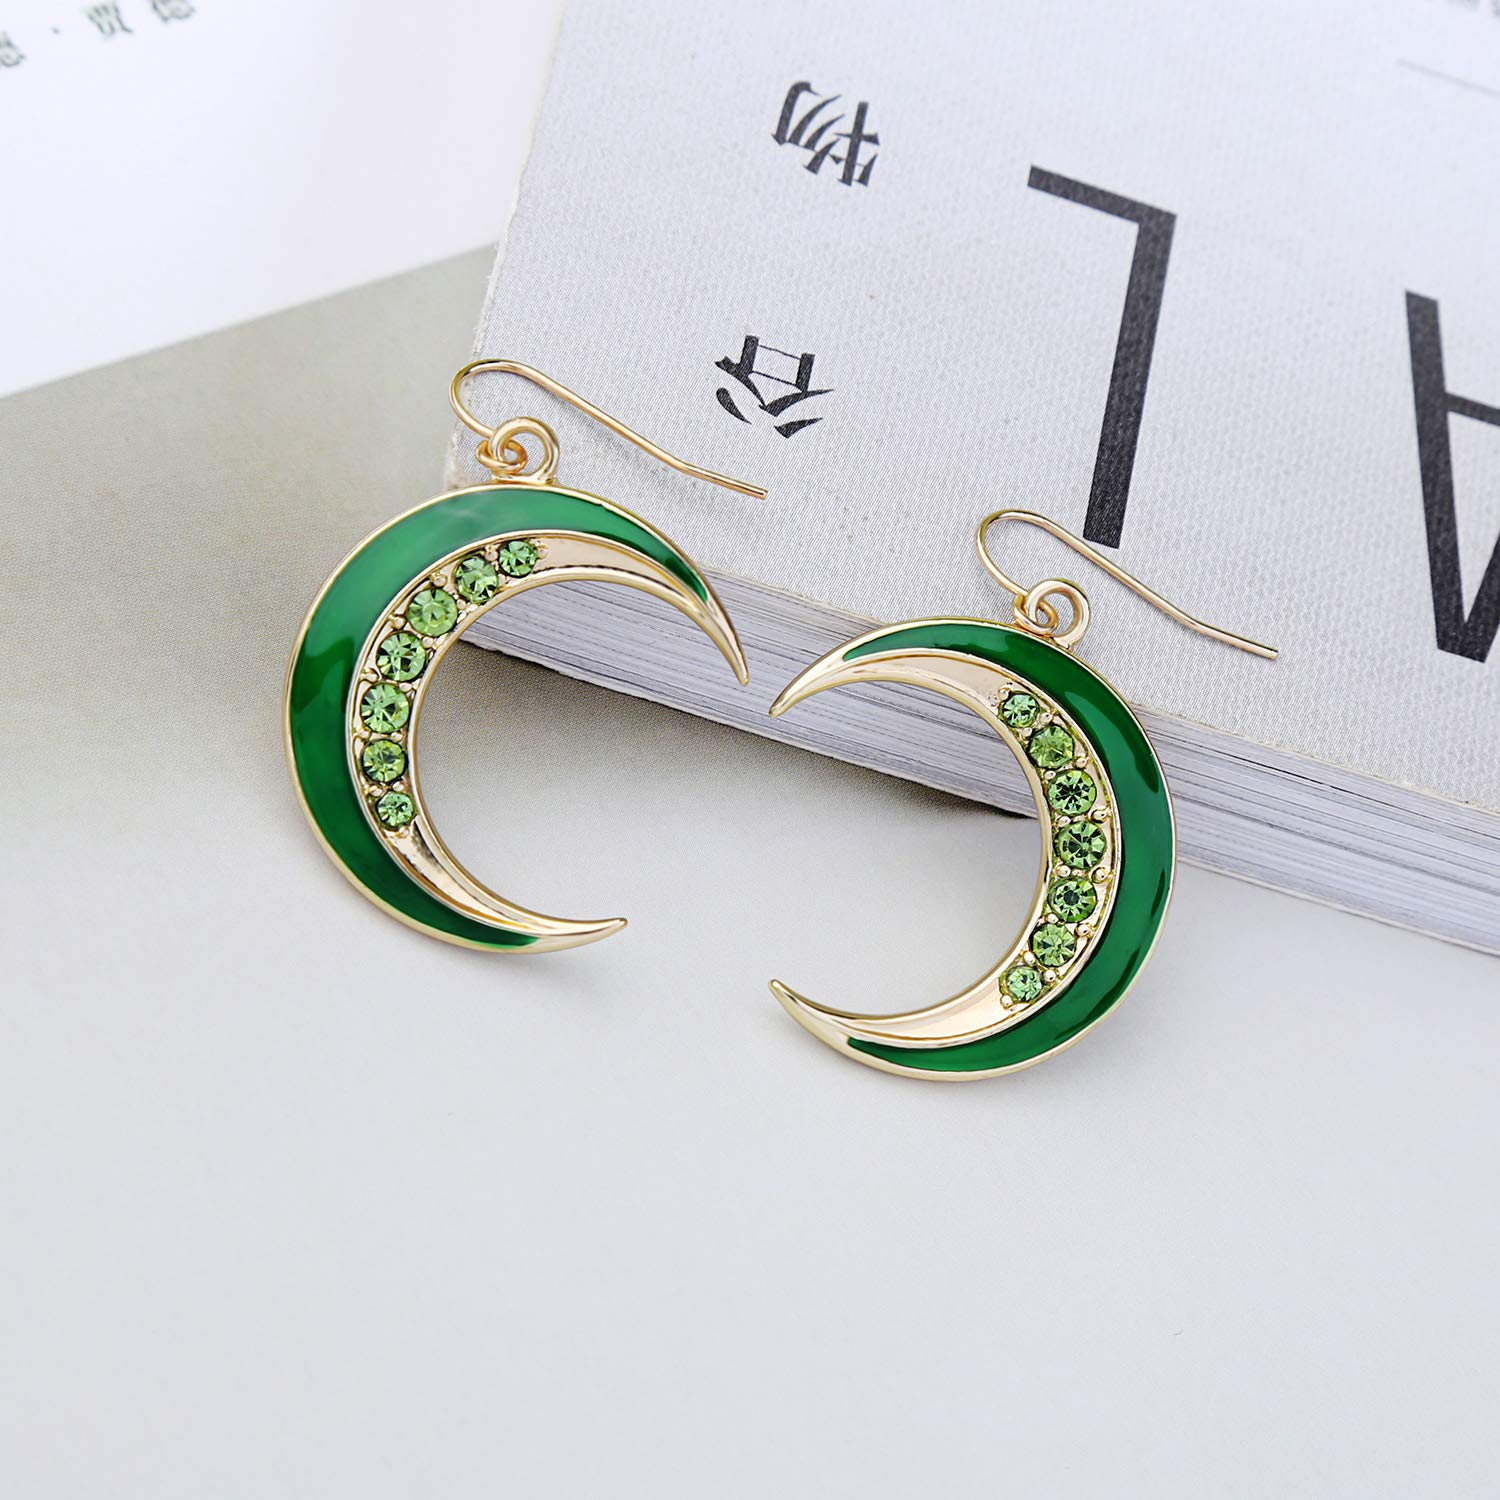 Miss Kiss Colorful Crystal Gold Earrings Half Moon Earrings for Women and Girls Statement Drop Earrings Jewelry for Wedding Gifts ED01601c